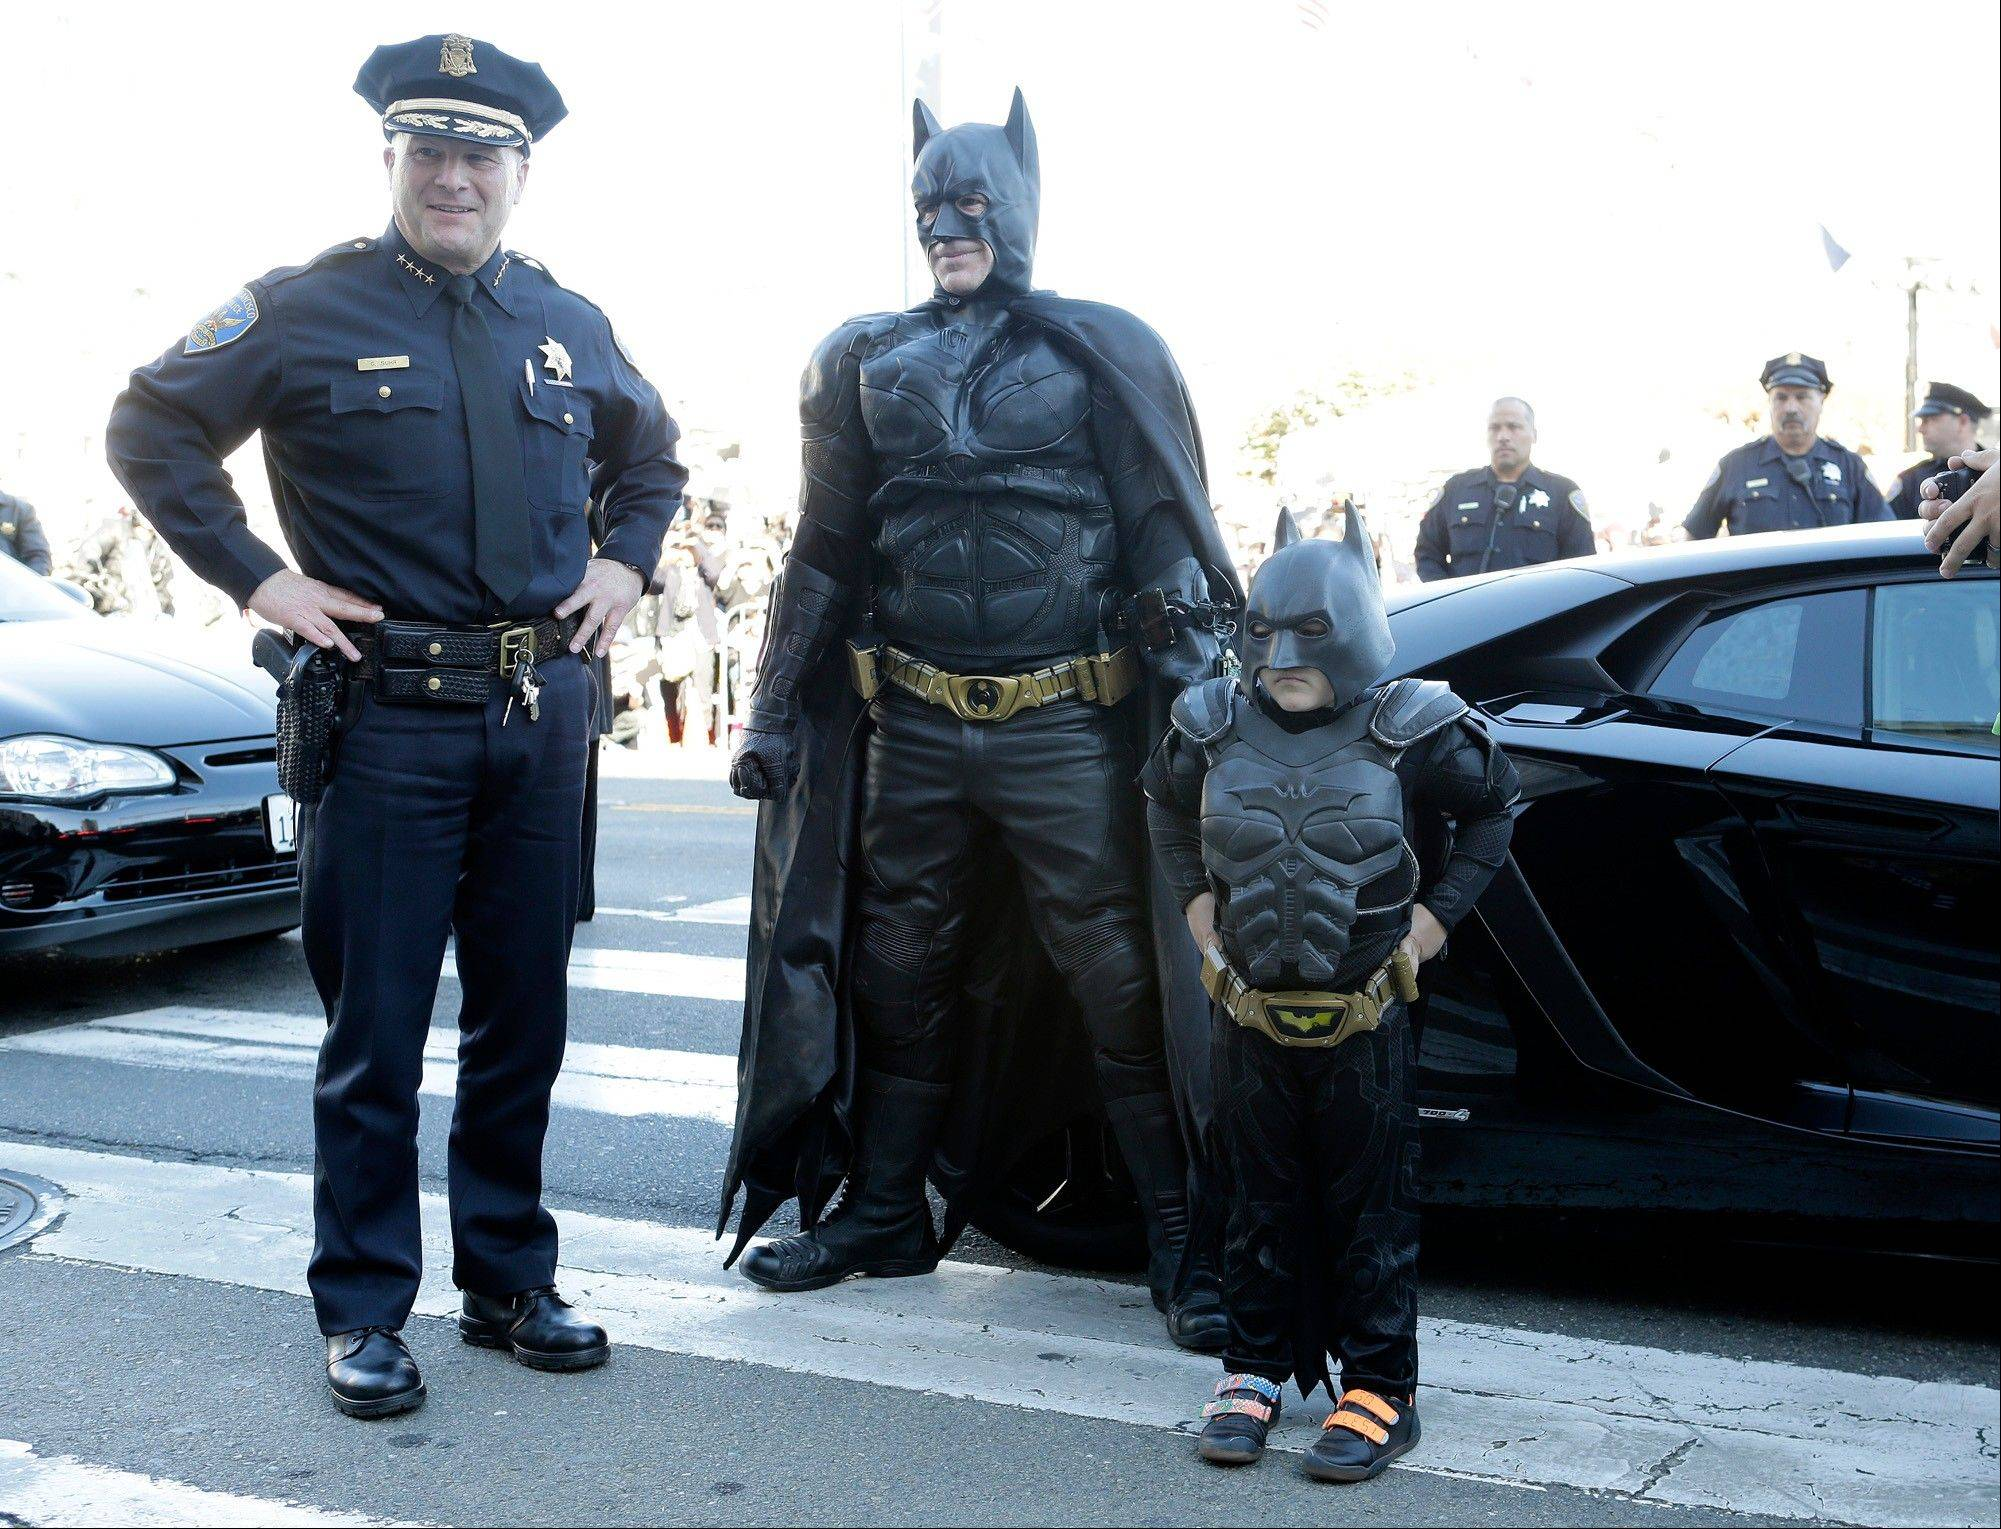 Batkid, Miles Scott, 5, is greeted as he arrives at City Hall in San Francisco Nov. 15, 2013, the day the Make-A-Wish Greater Bay Area granted his wish to be Batkid for a day.